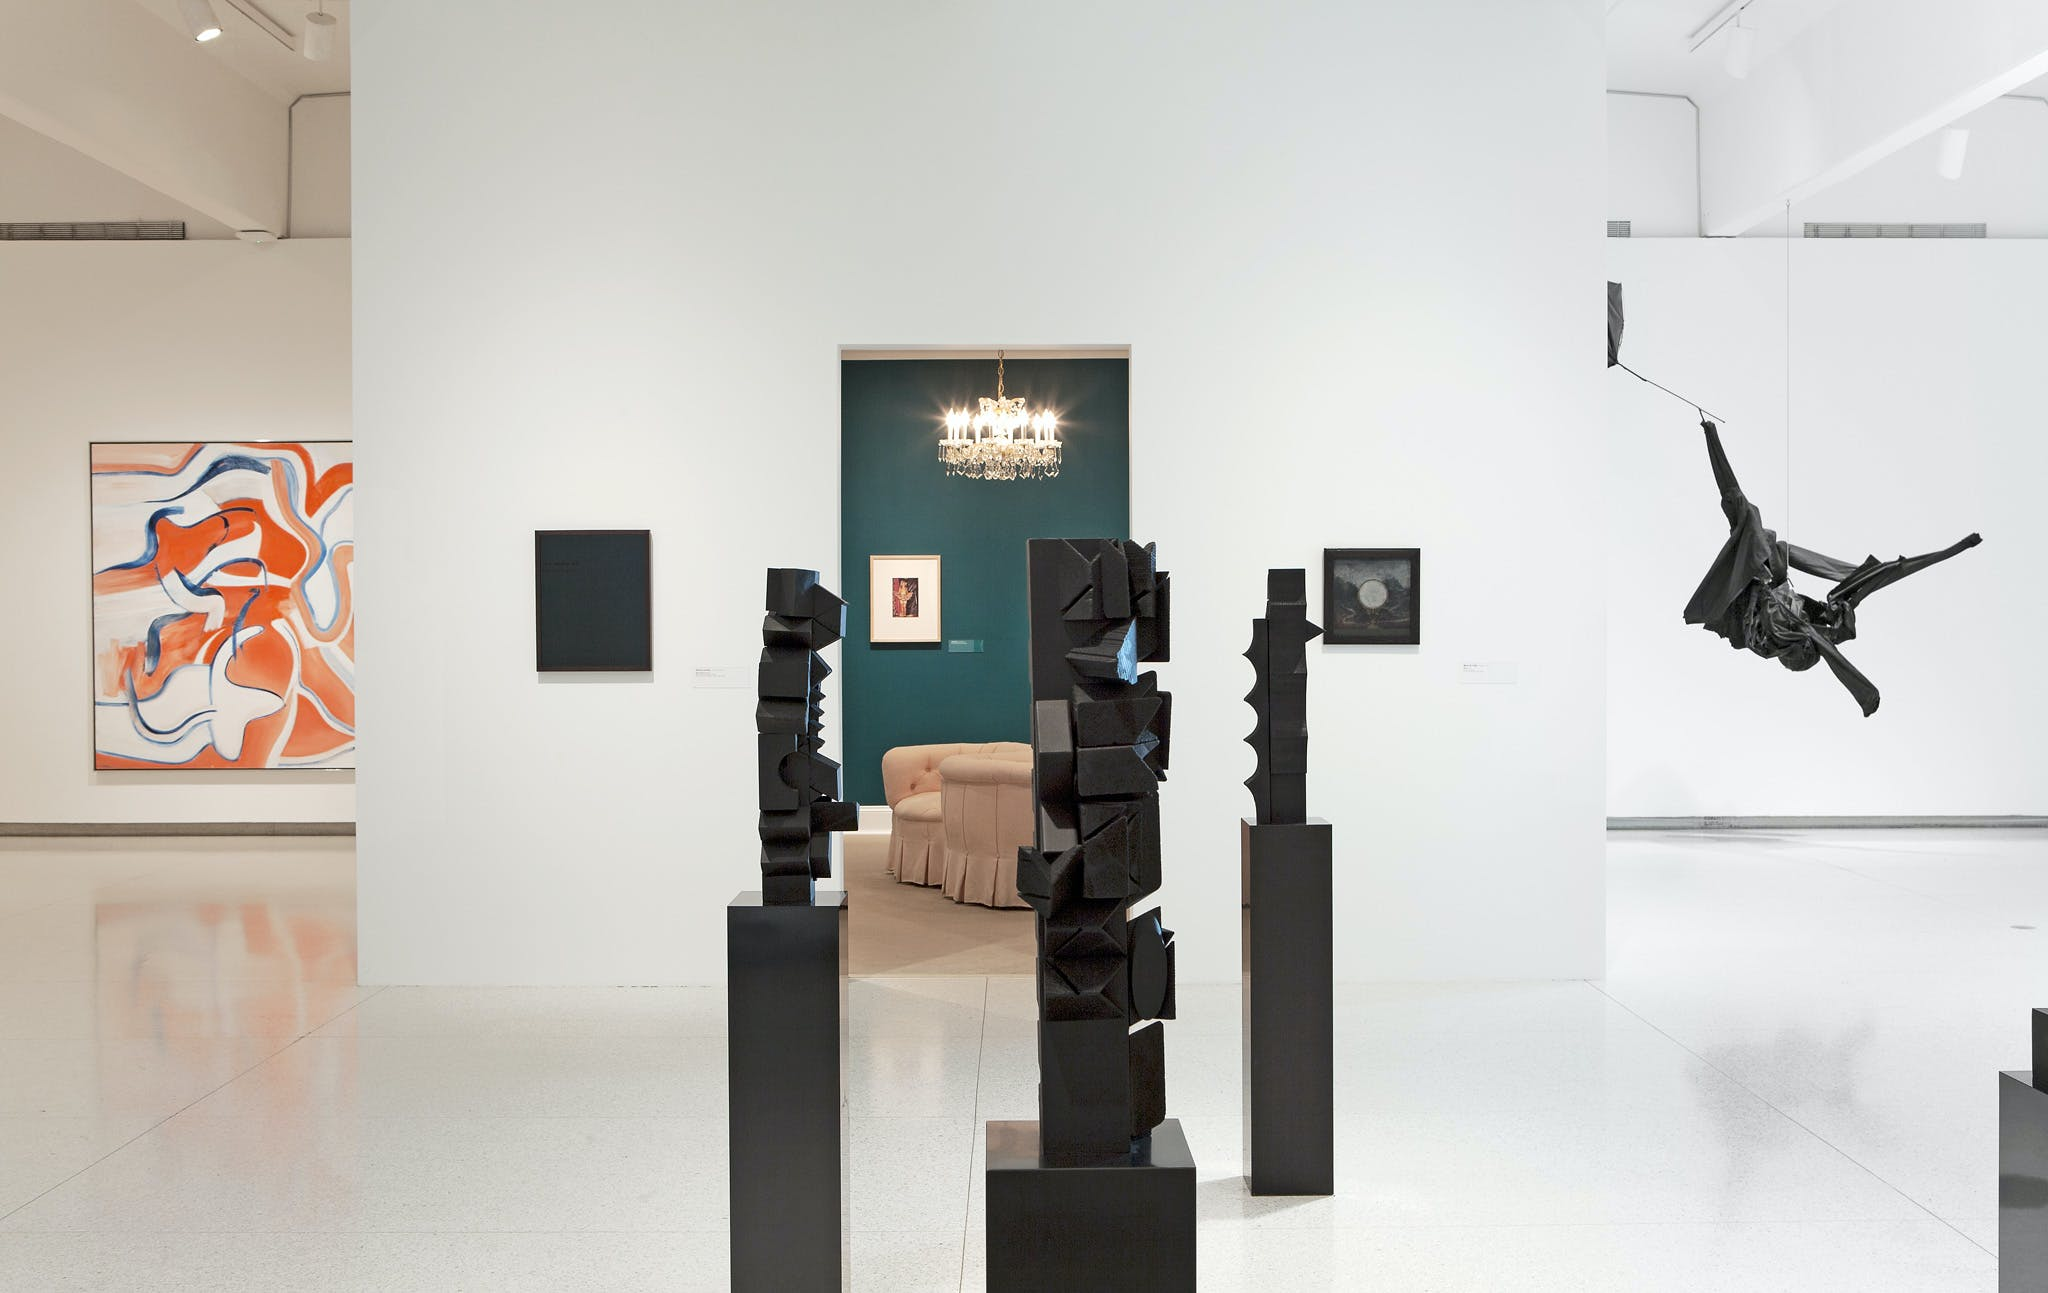 Installation view of the exhibition Midnight Party, 2011